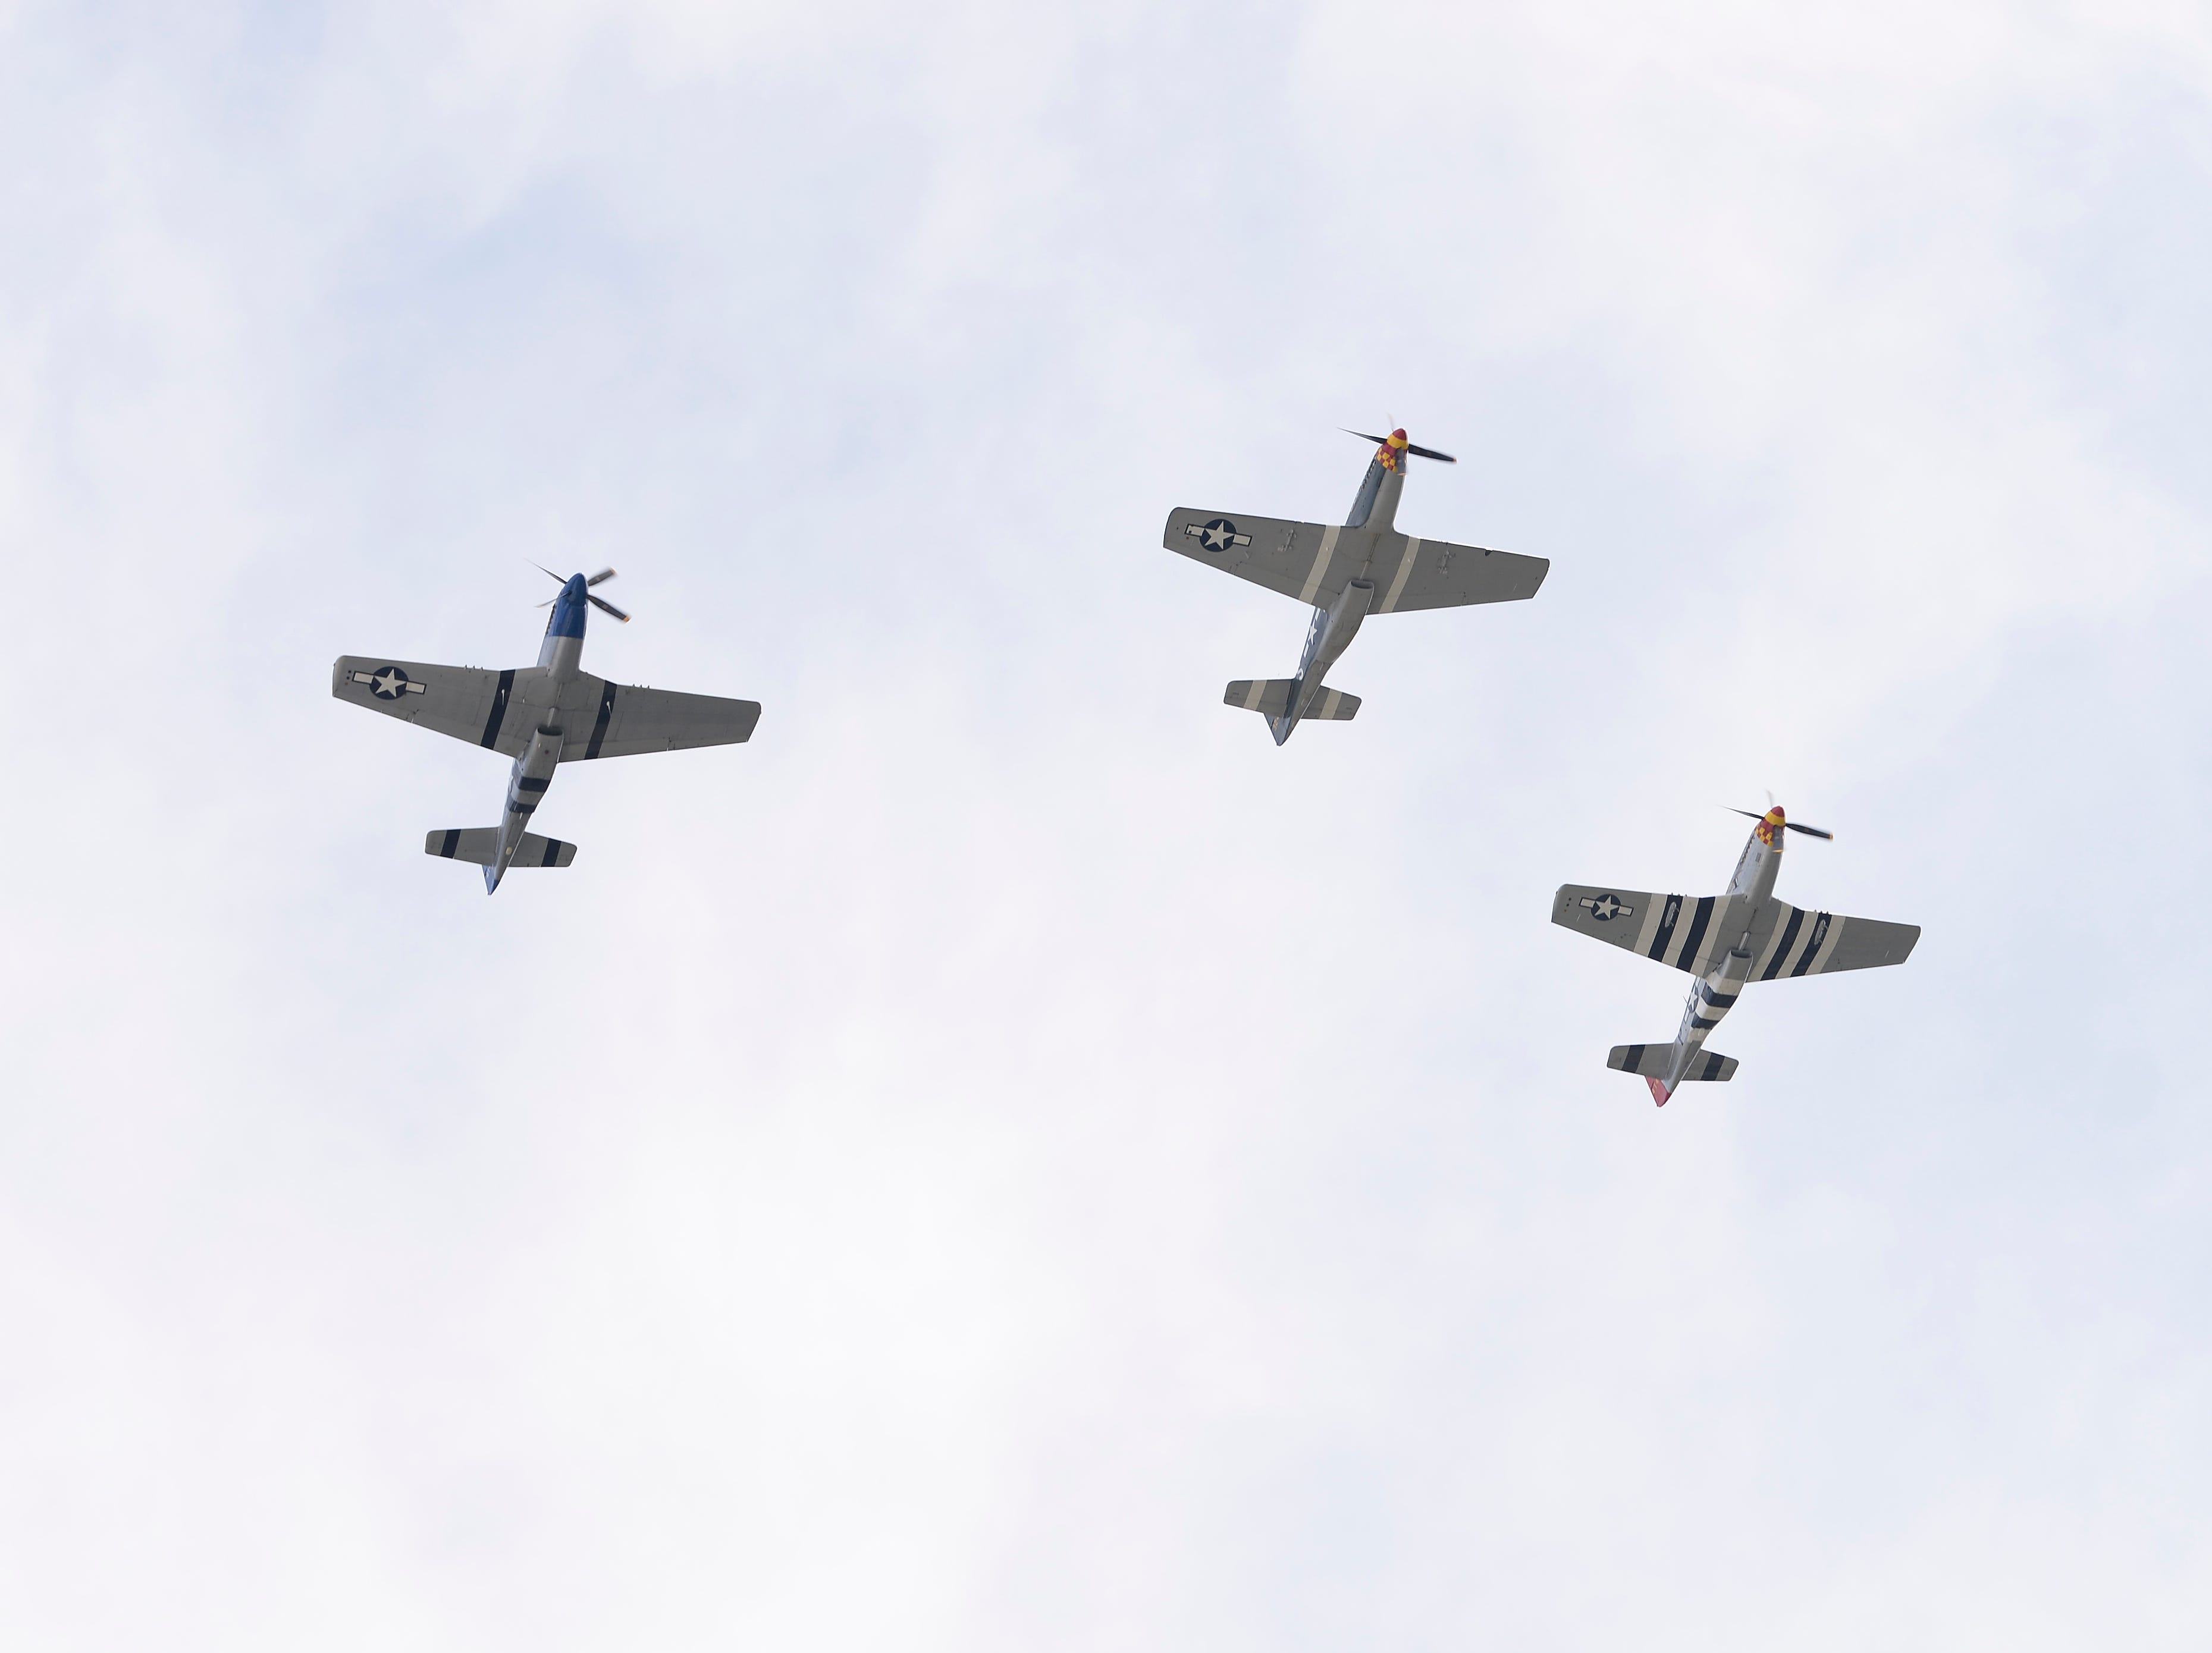 P-51 Mustang does a fly over during the event